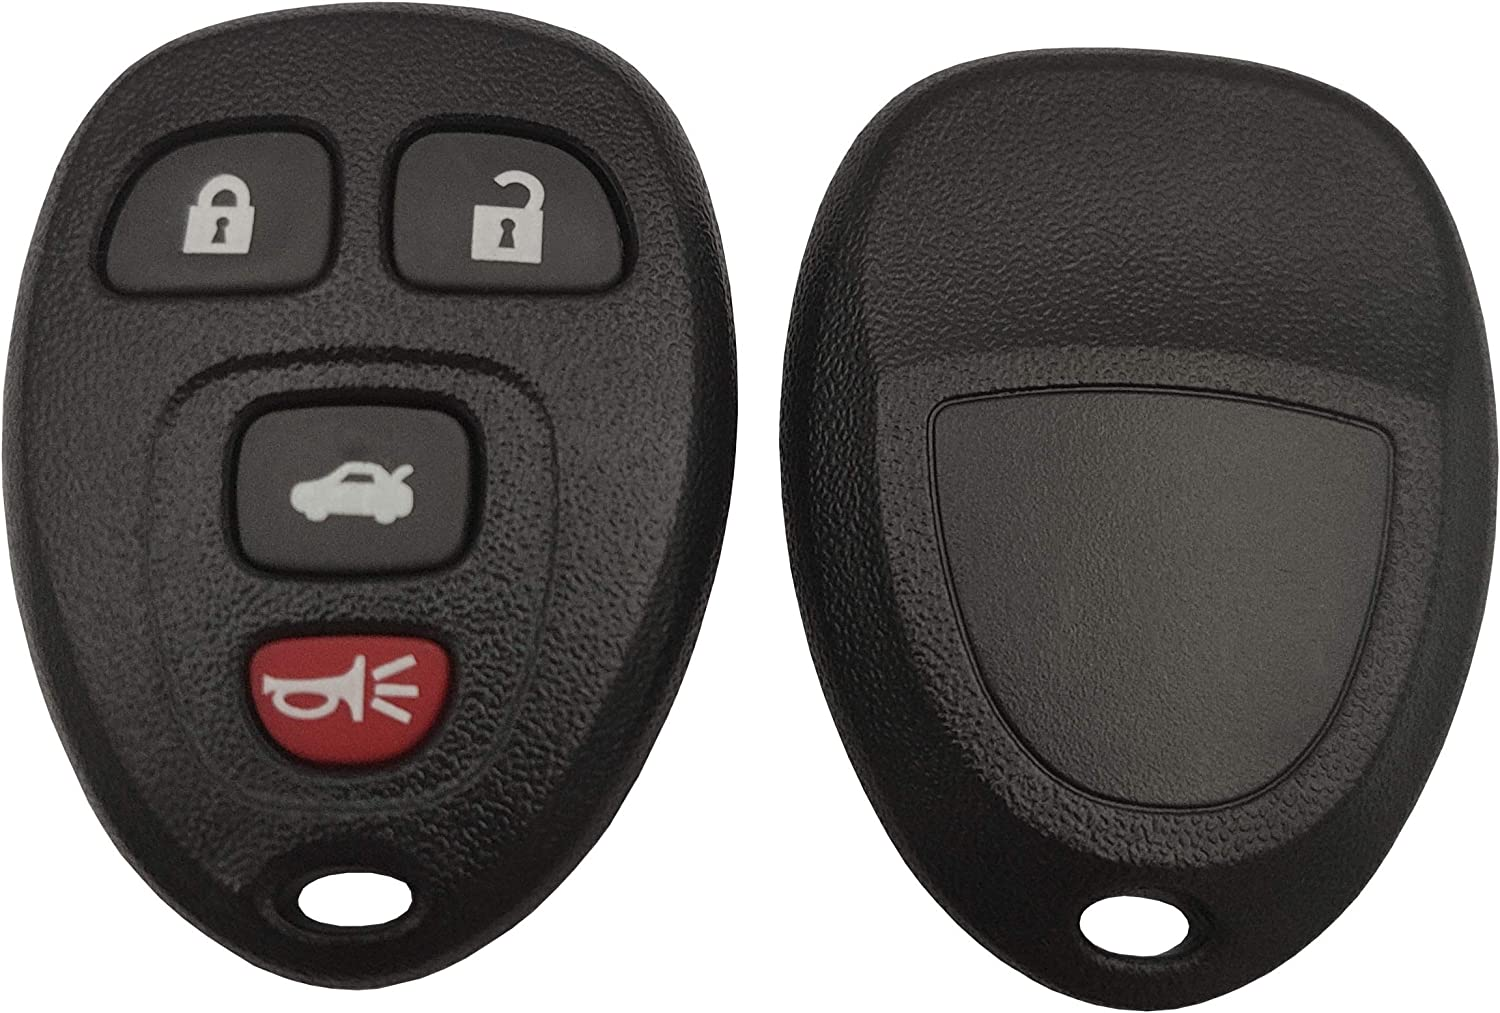 BINOWEN Replacement for GM Chevrolet Chevy Cadillac Buick 4 Buttons Keyless Entry Remote Car Key Fob Shell Case